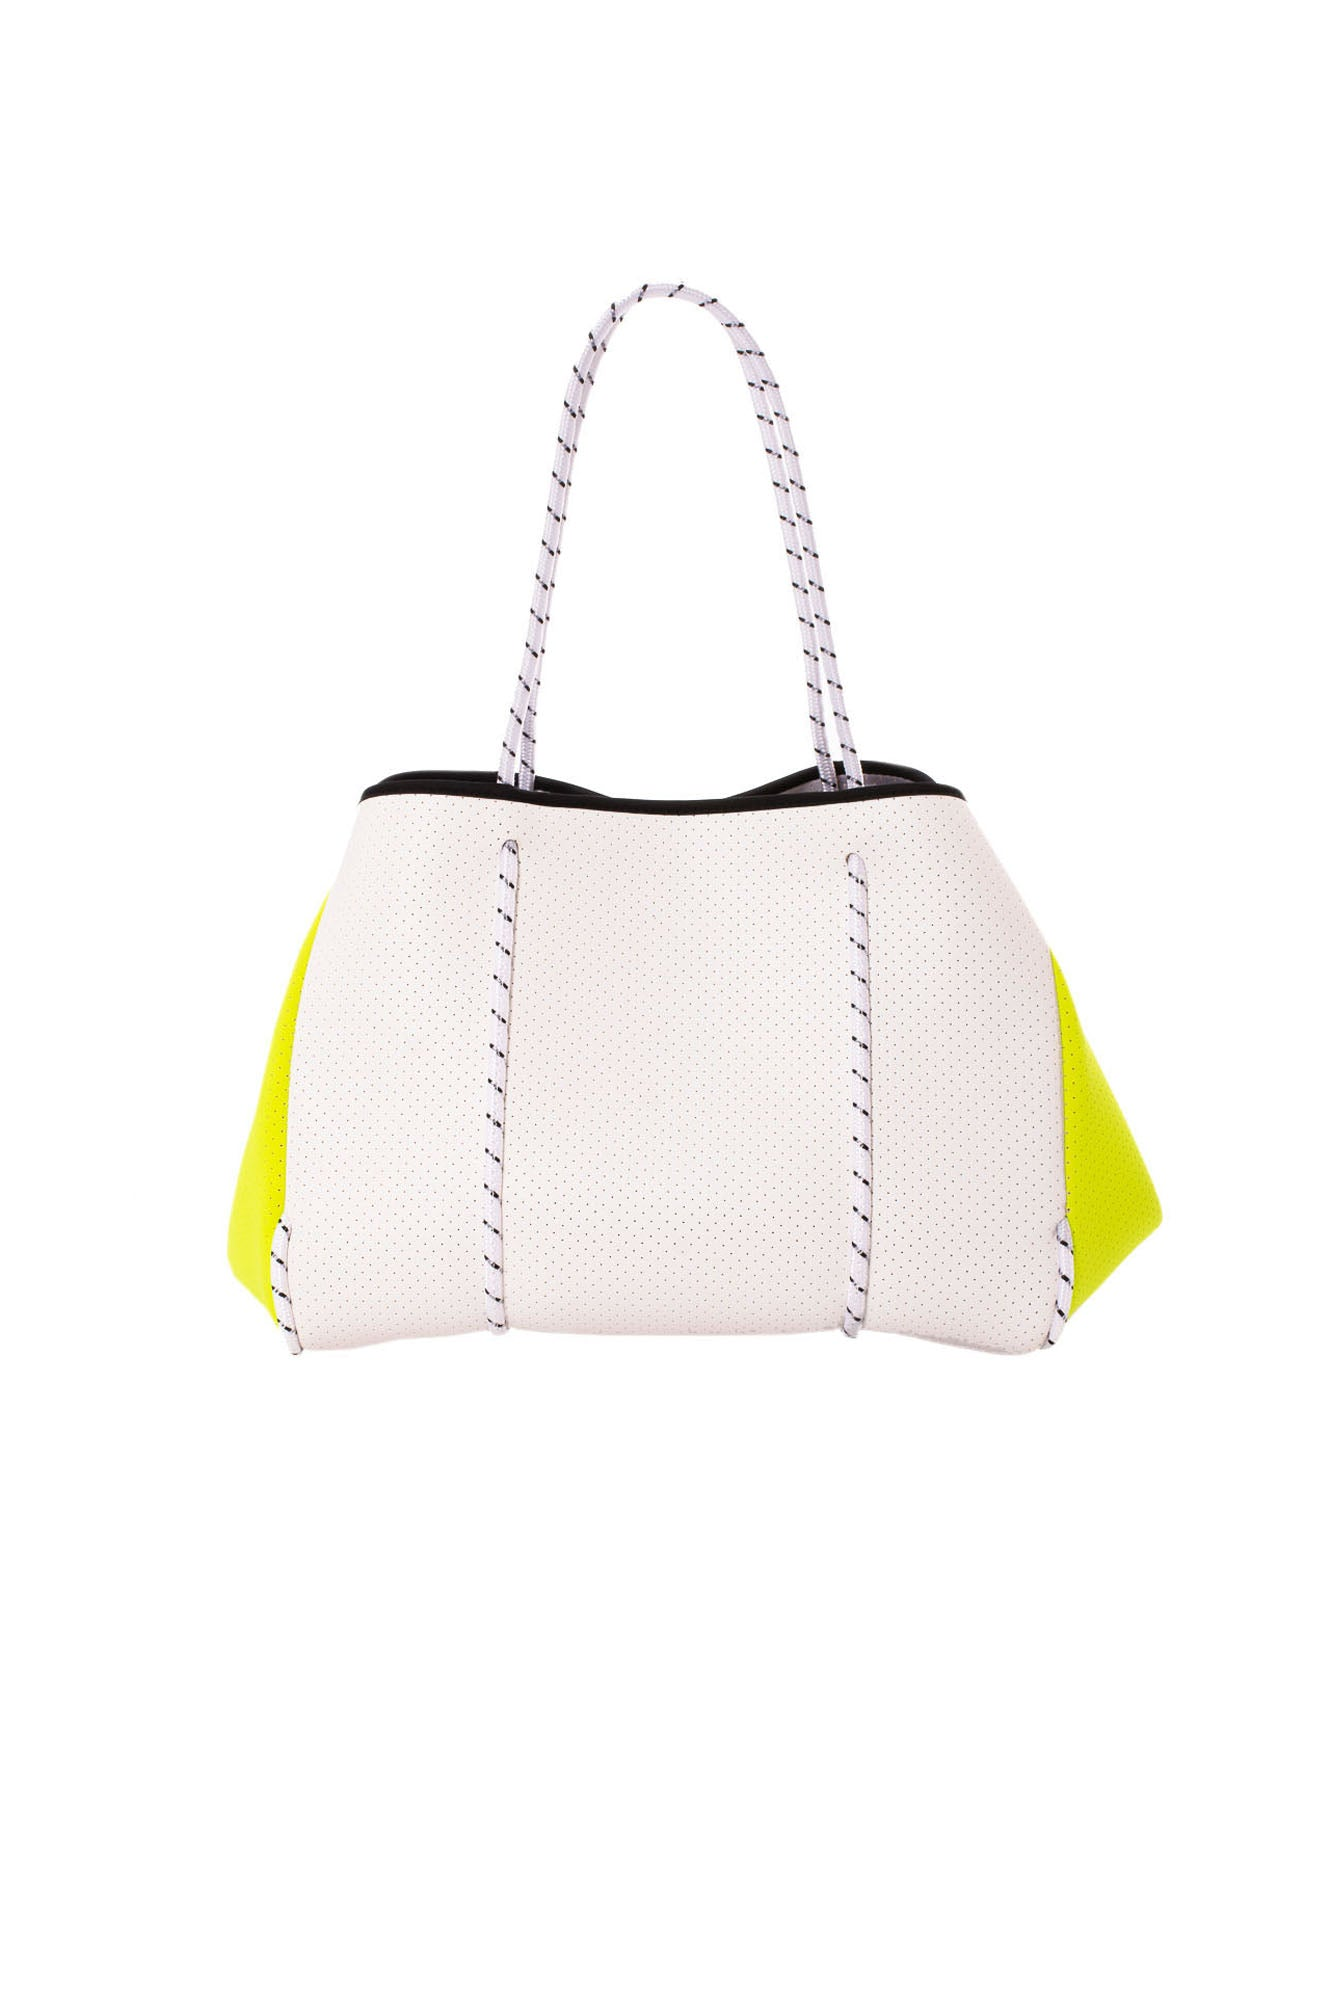 Greyson Vision Tote Bag with/Tethered Removable Wristlet (Style Vision, Neon Yellow/Green) by Haute Shore